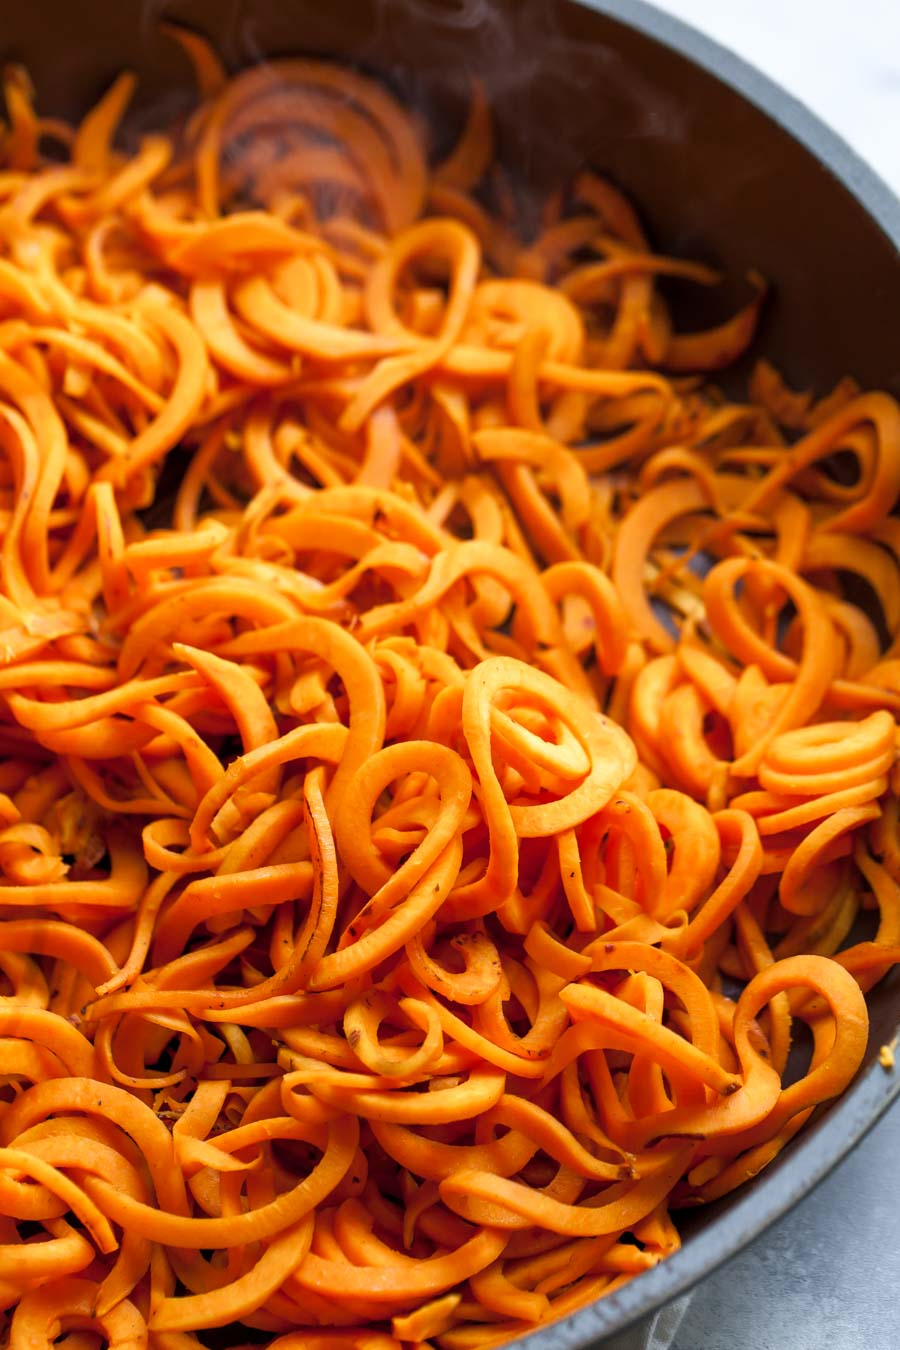 How to Make Spiralized Sweet Potato Noodles